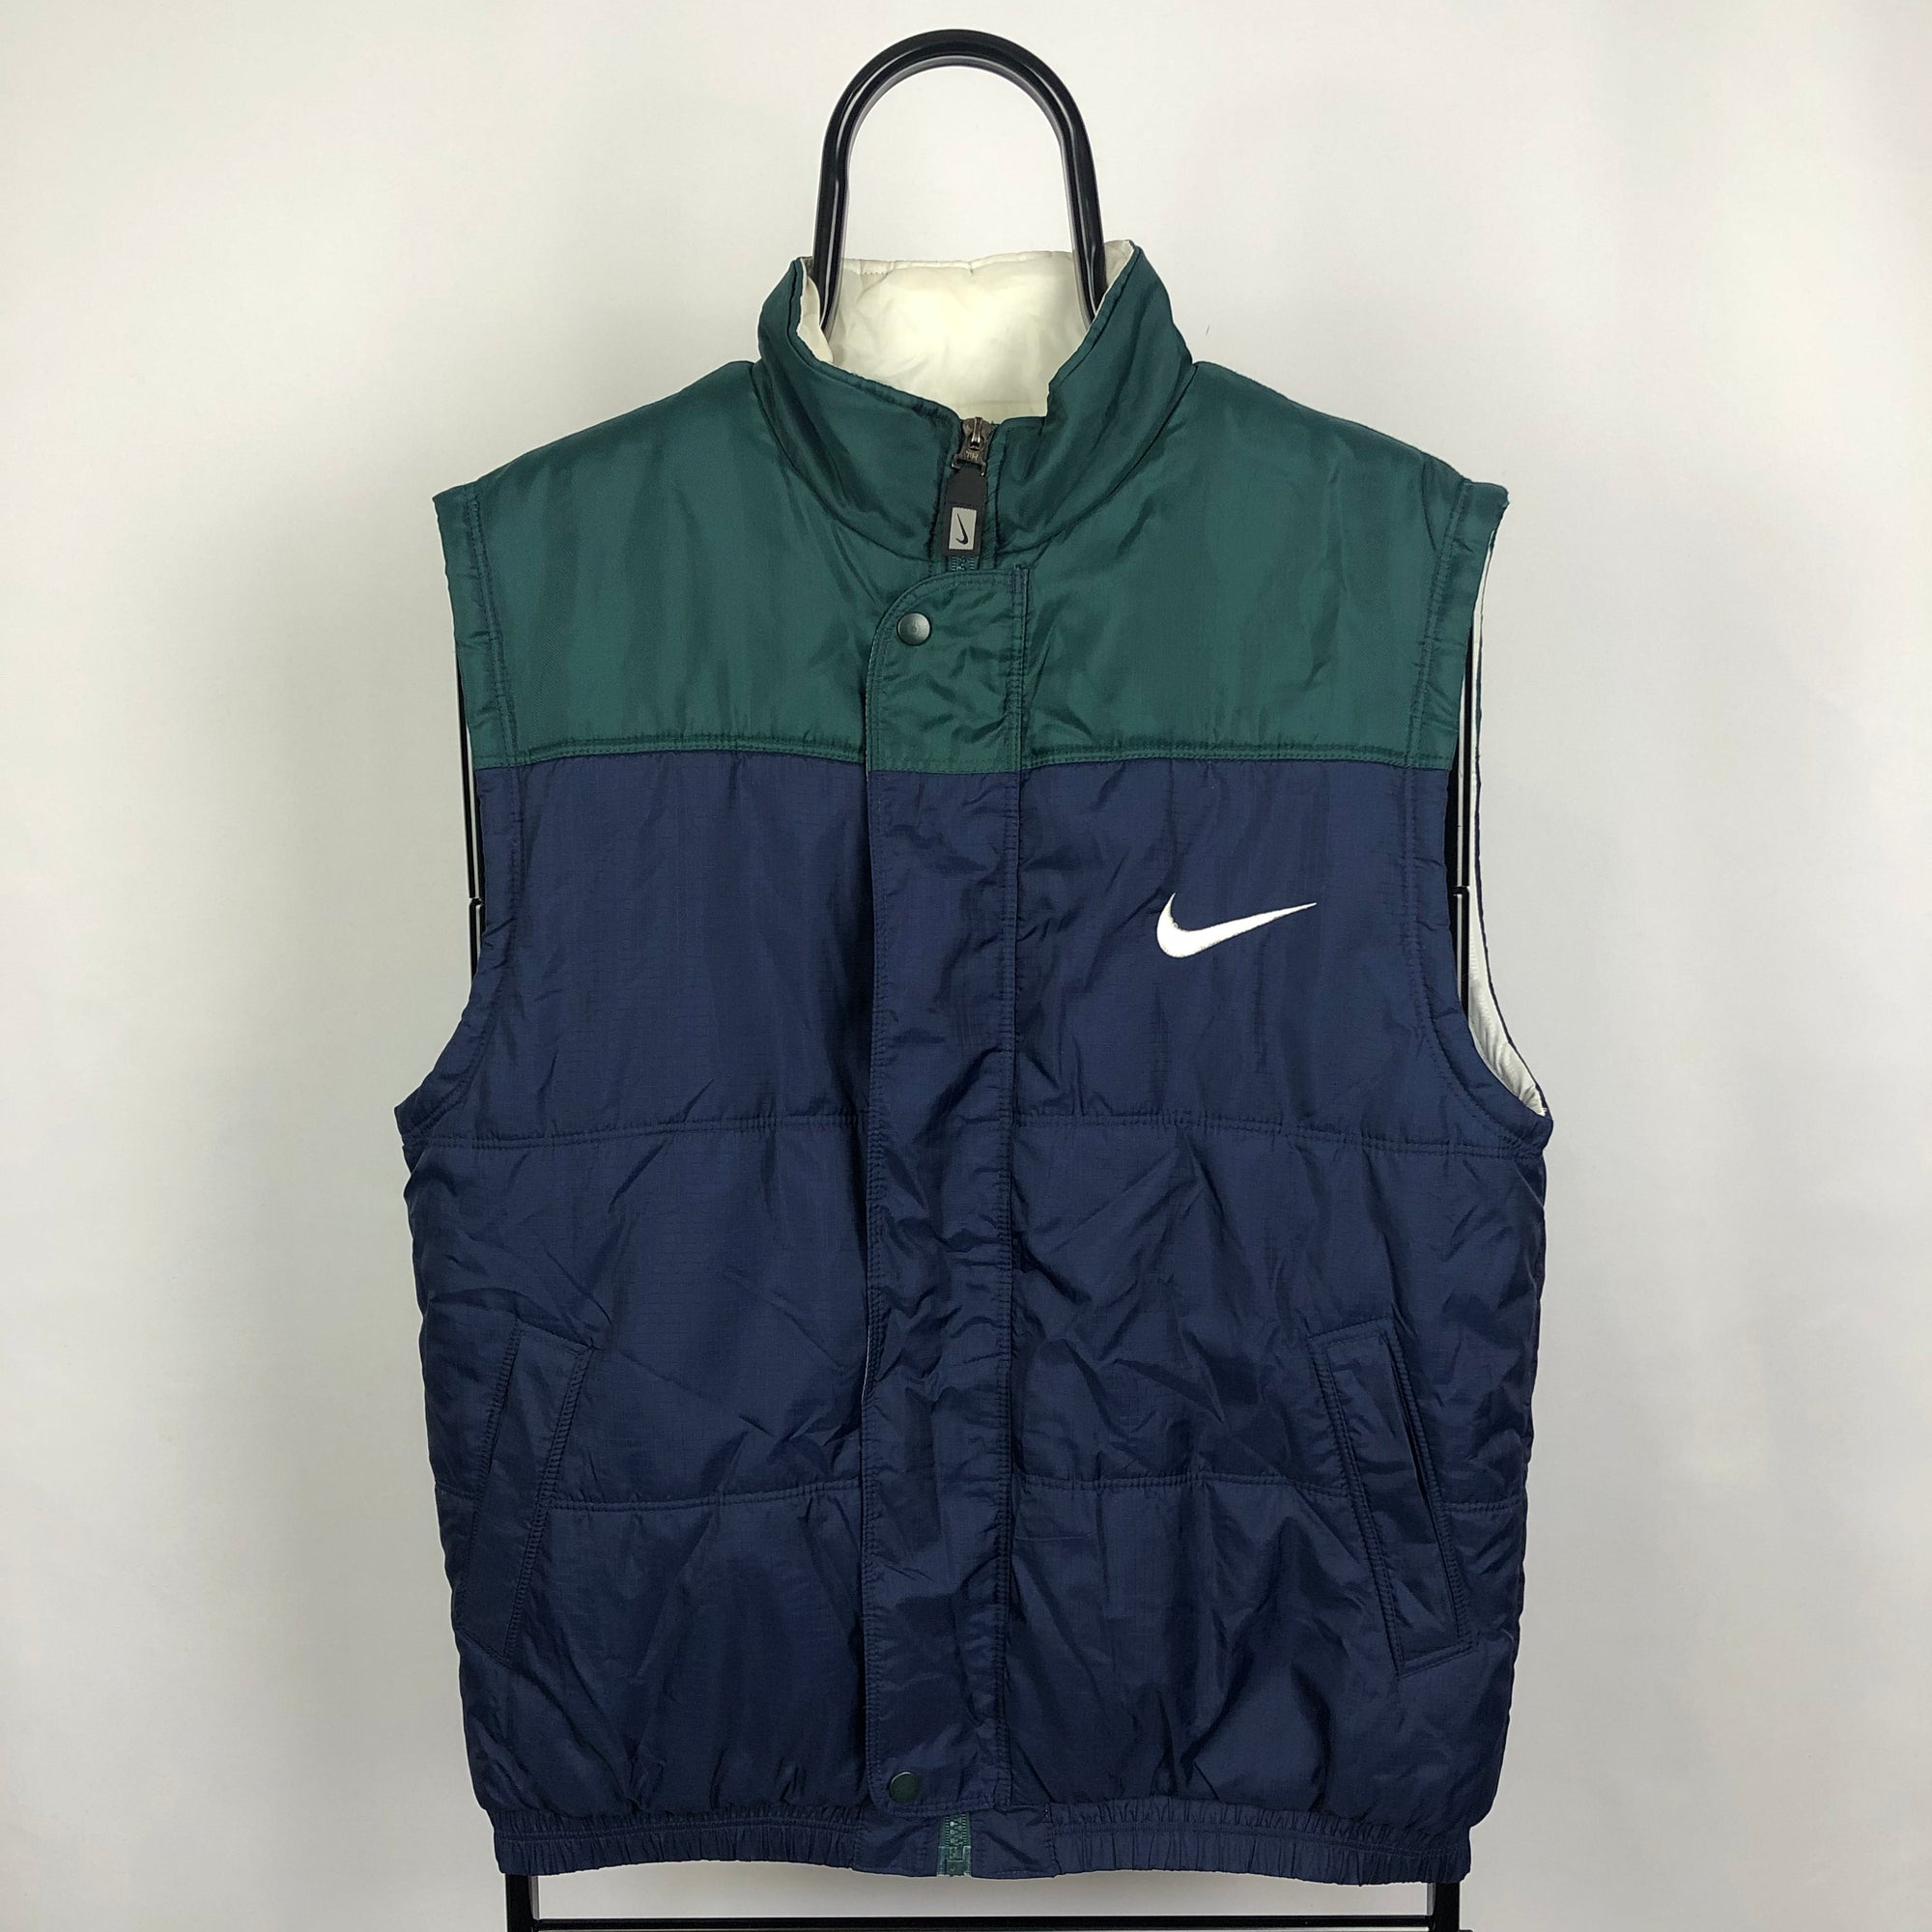 Nike 90's Gilet - Men's Medium/Women's Large